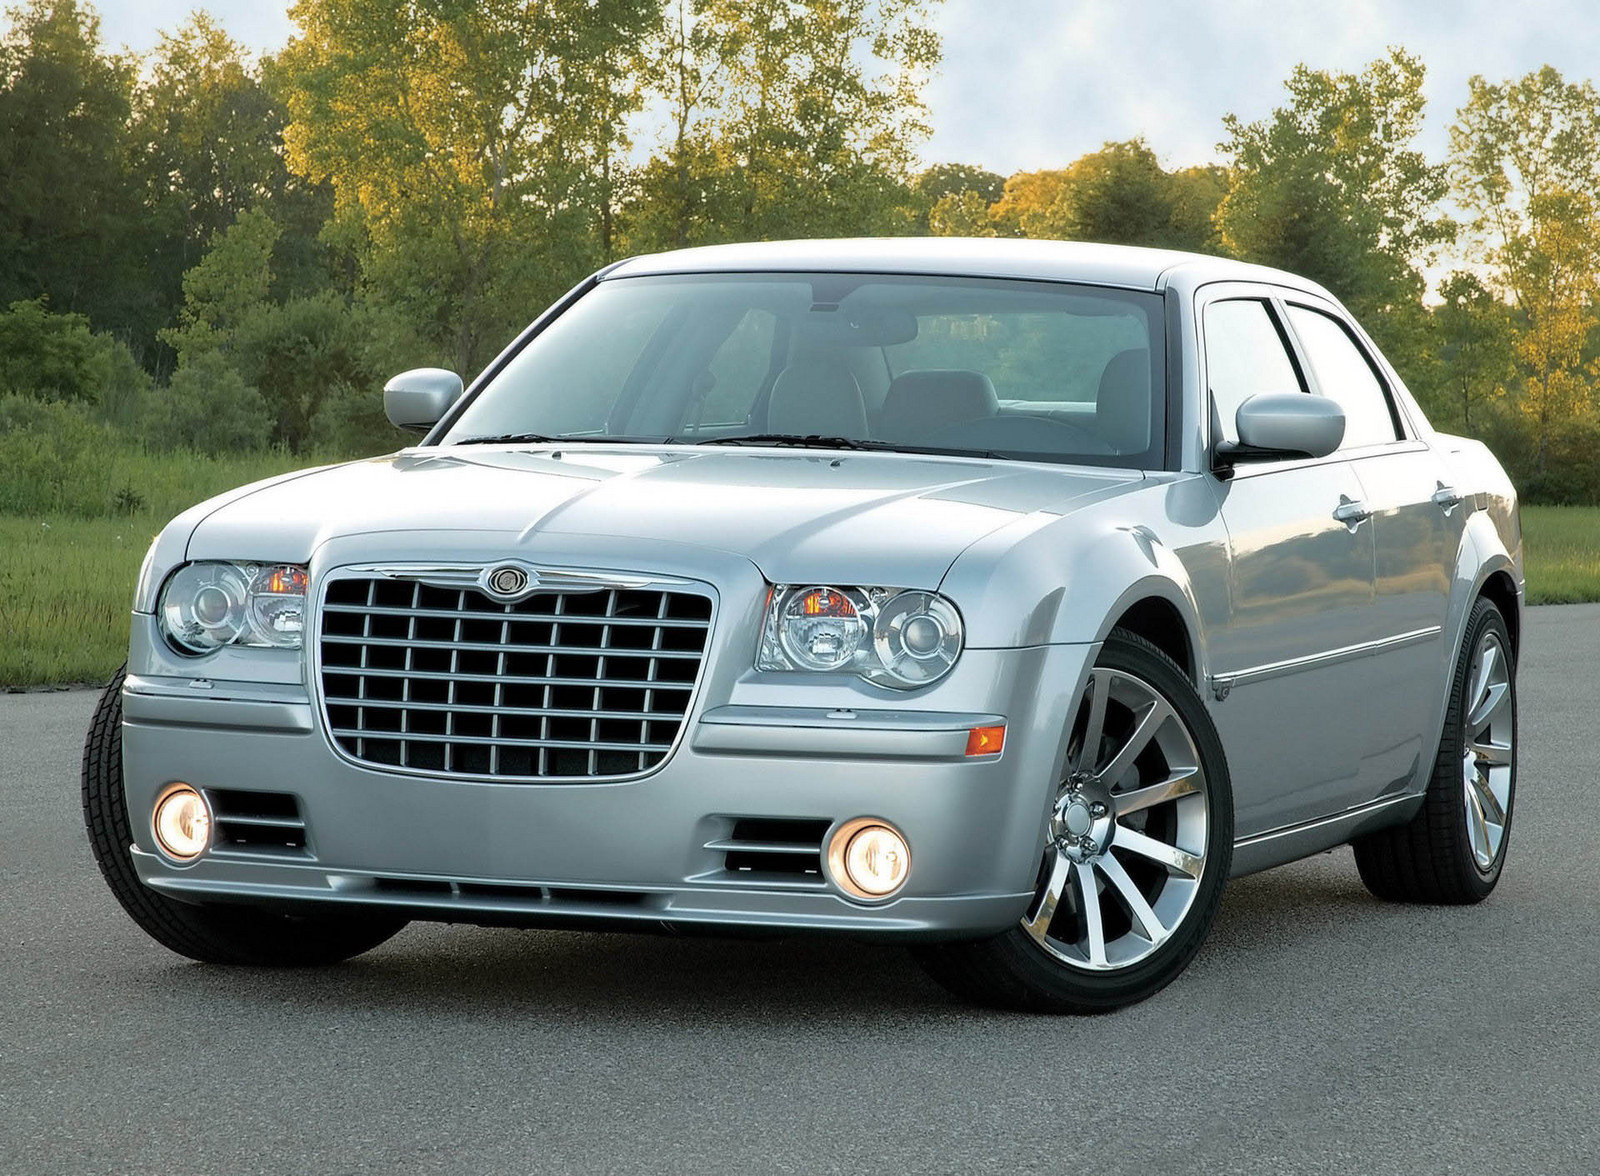 2005 chrysler 300c srt8 review top speed. Black Bedroom Furniture Sets. Home Design Ideas